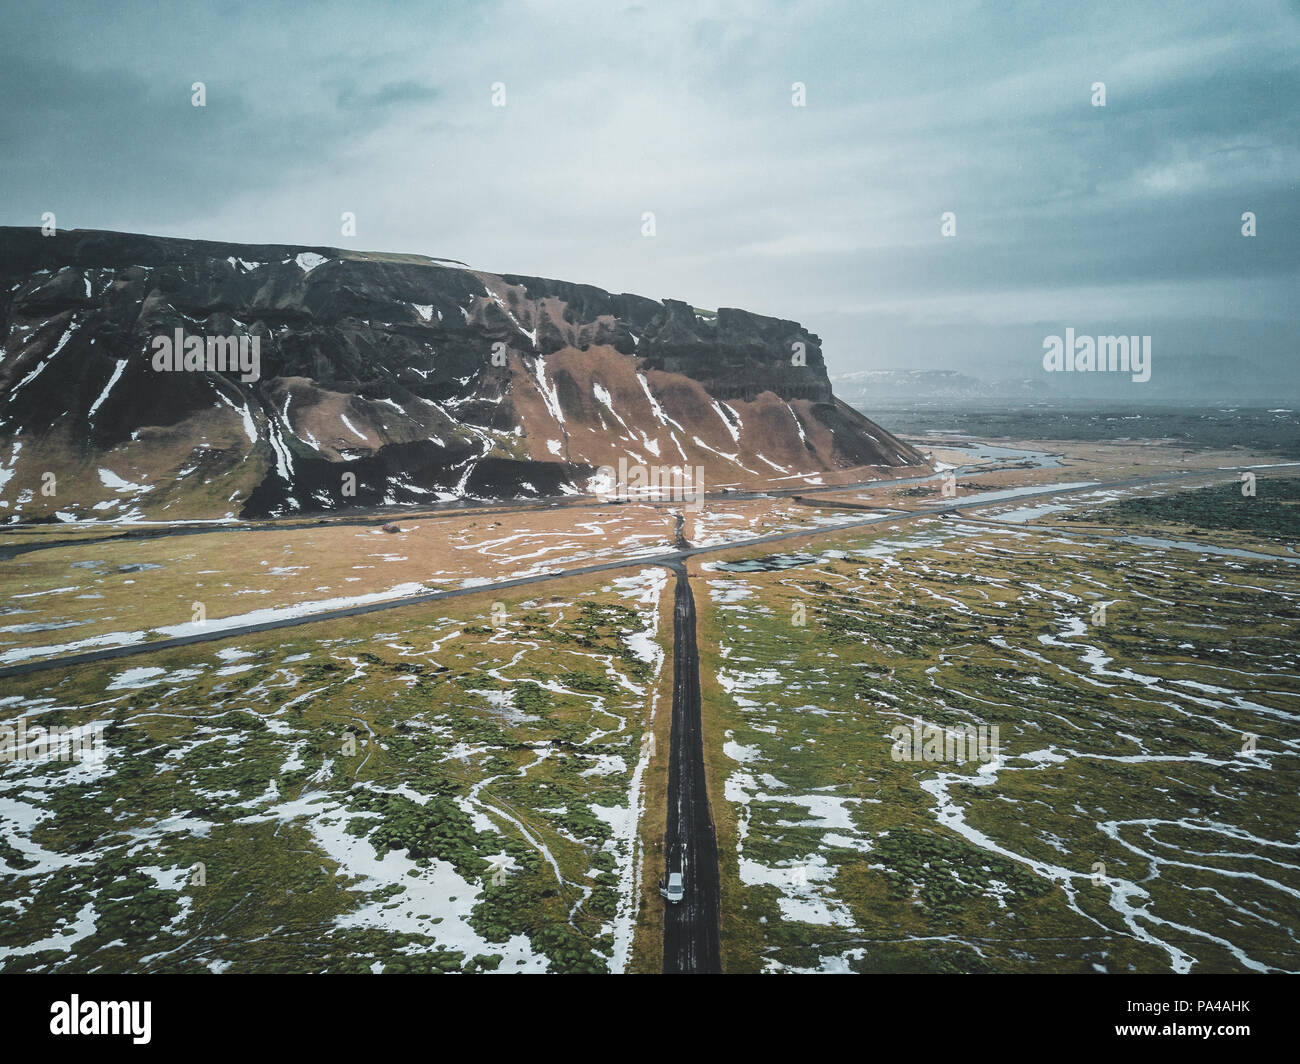 Aerial photograph of mountain and ringroad in iceland with green moss and snow - Stock Image